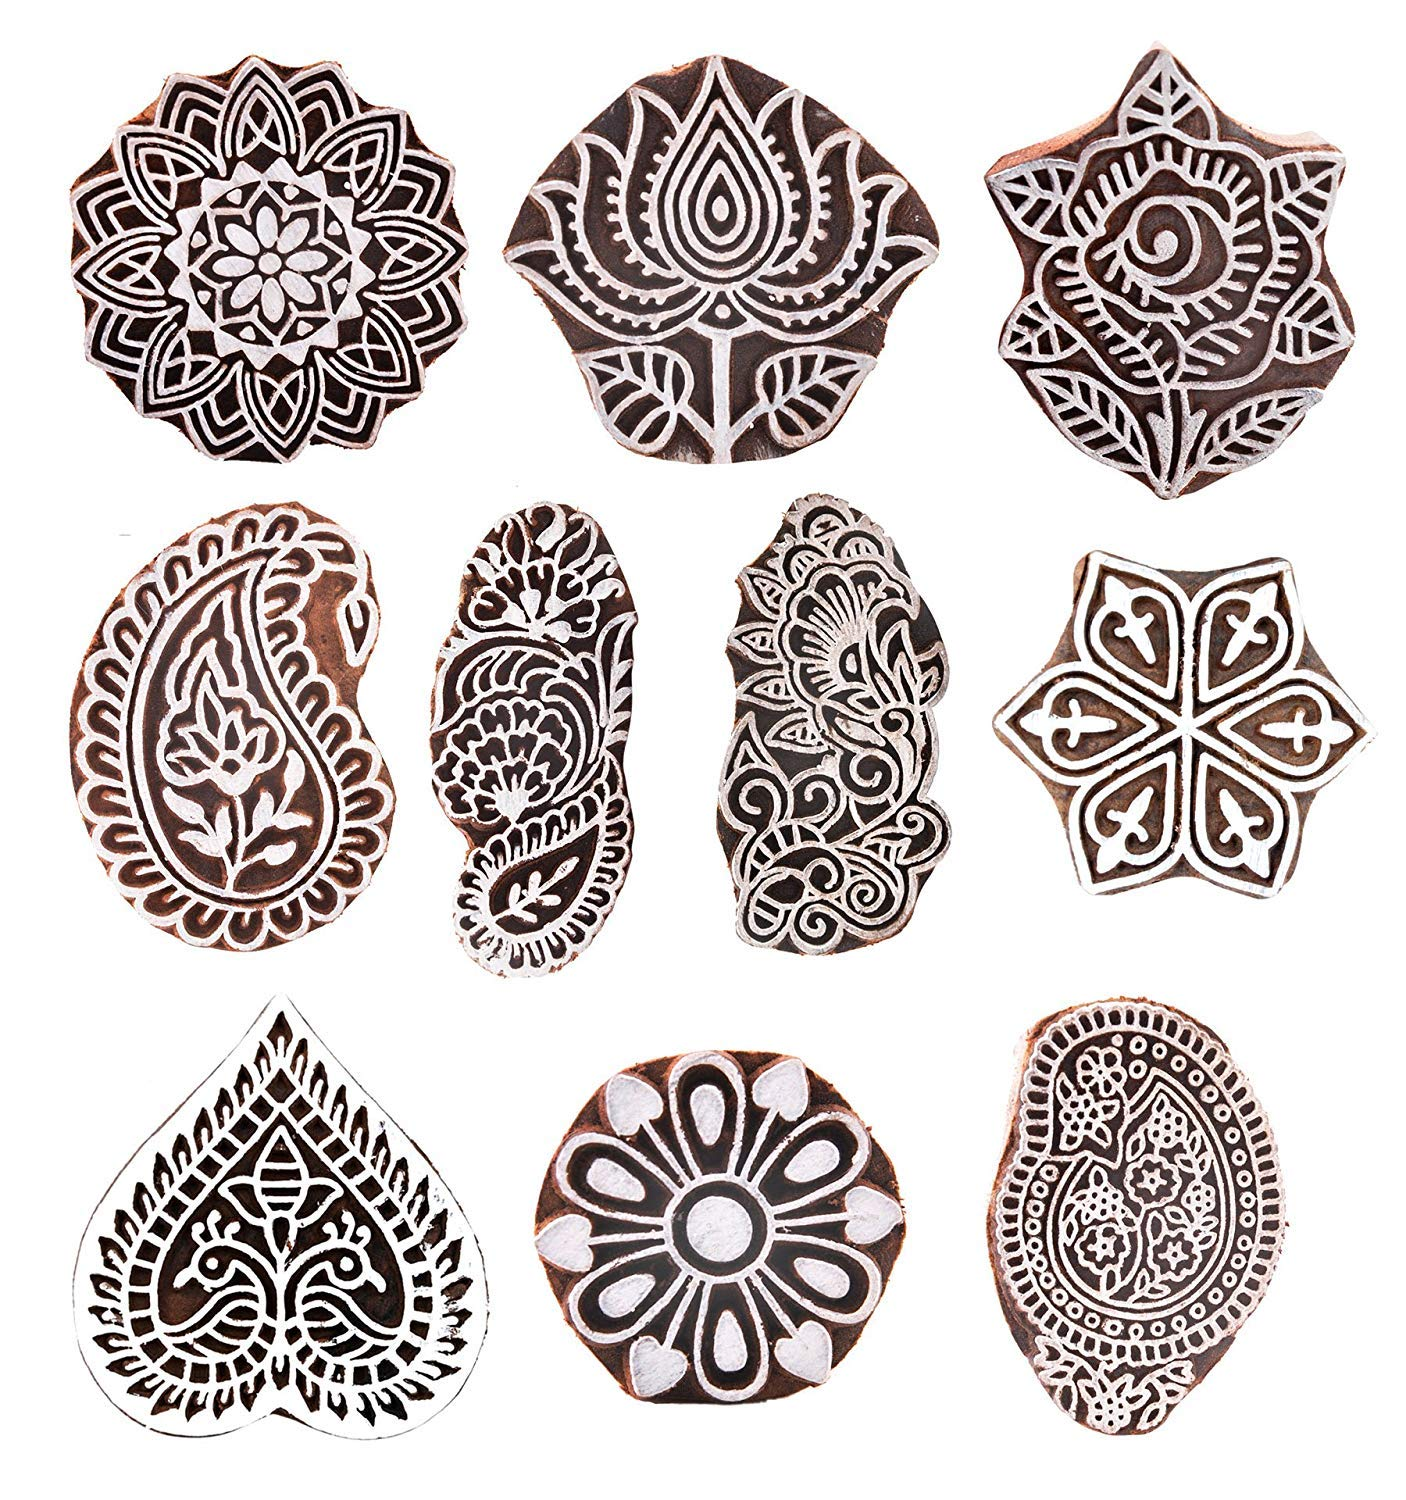 PARIJAT HANDICRAFT (Set of 10) Mughal Design Wooden Printing Stamp Block Hand-Carved for Saree Border Making Pottery Crafts Textile Printing